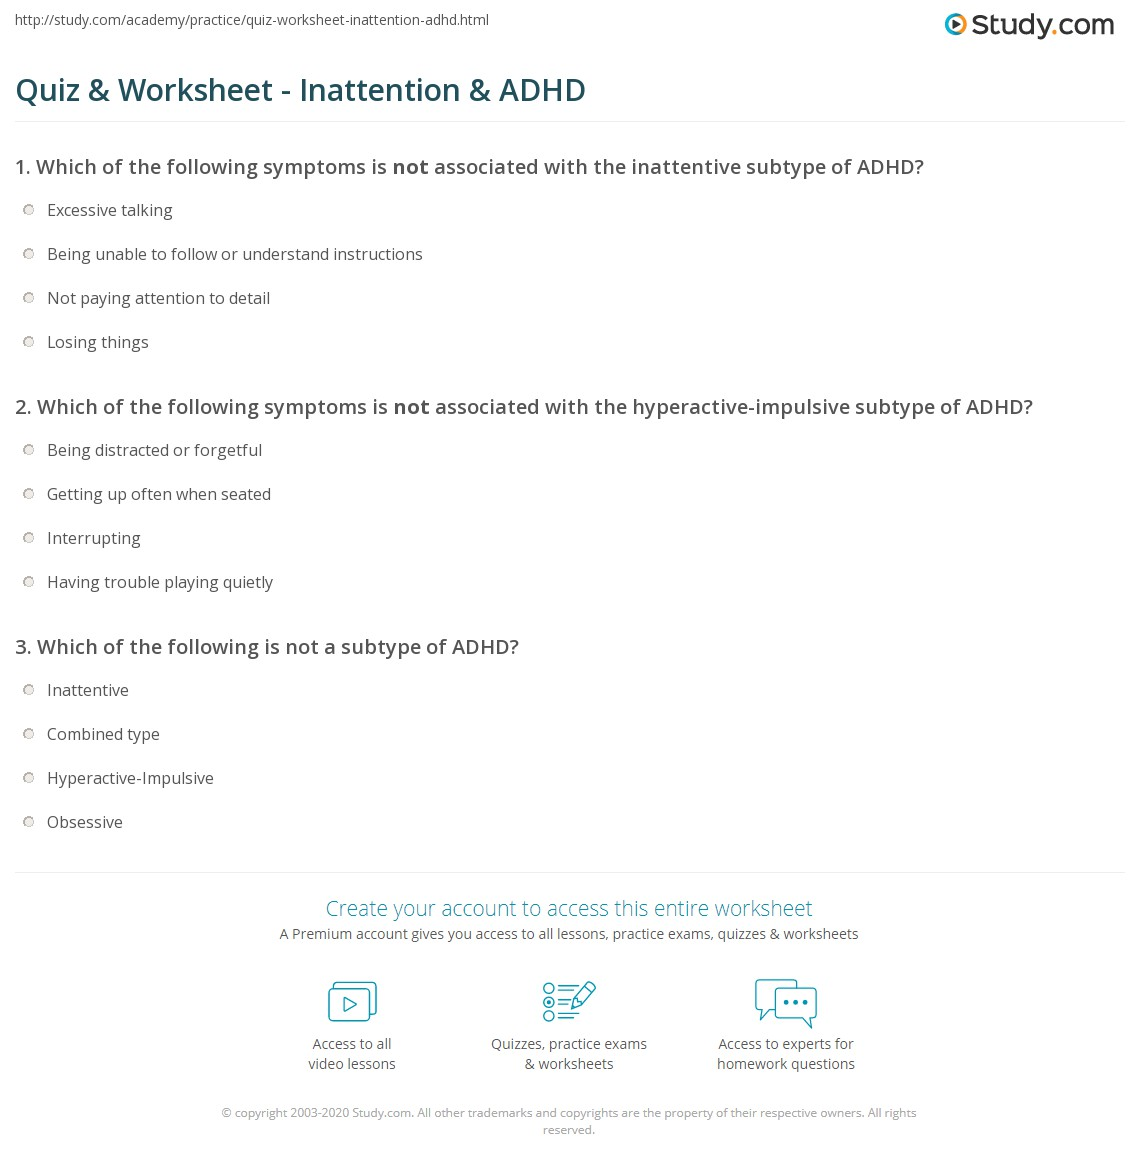 quiz worksheet inattention adhd com print inattention adhd definition explanation worksheet